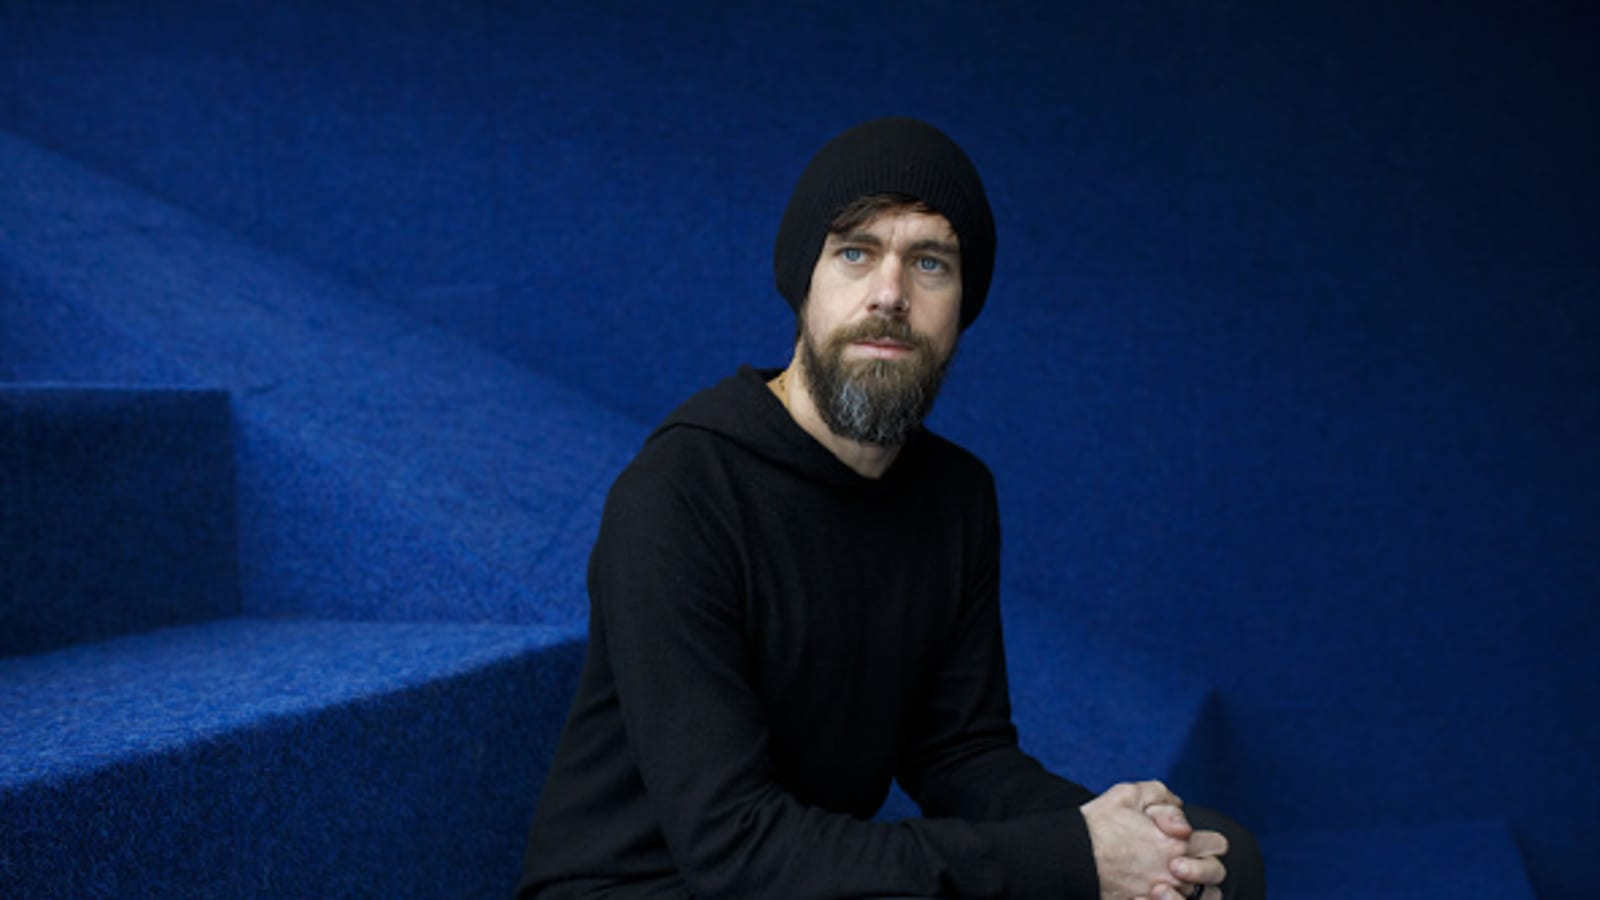 Twitter Ceo Jack Dorsey On Giving Away His Billions